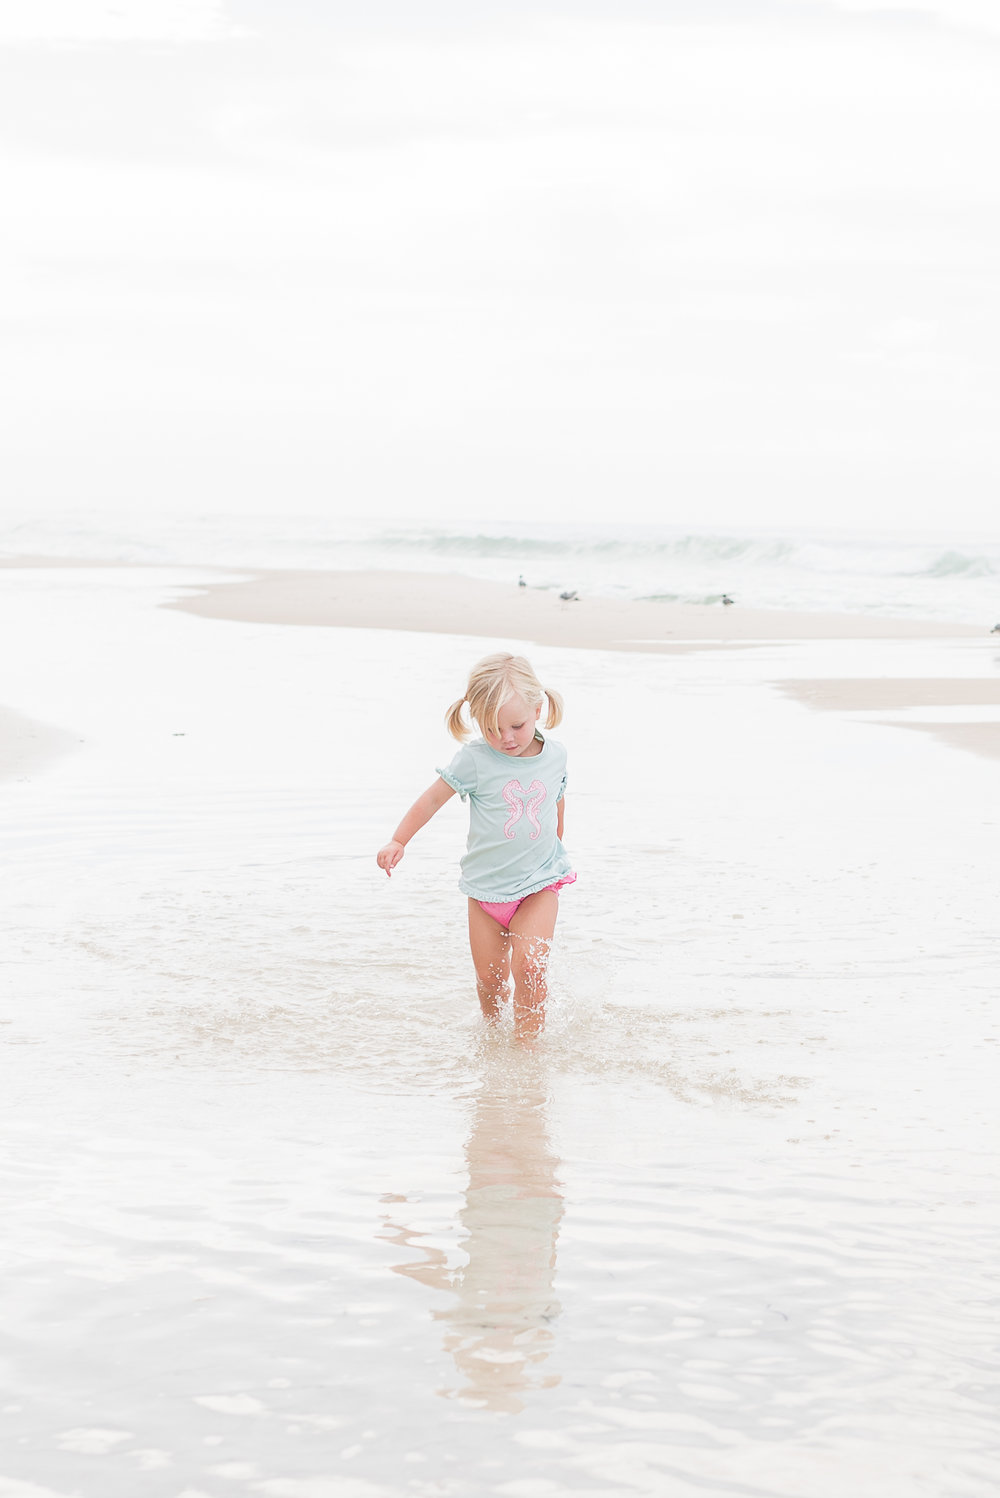 - early mornings were made for the beach - wide open spaces, sandcastles, and chasing waves.